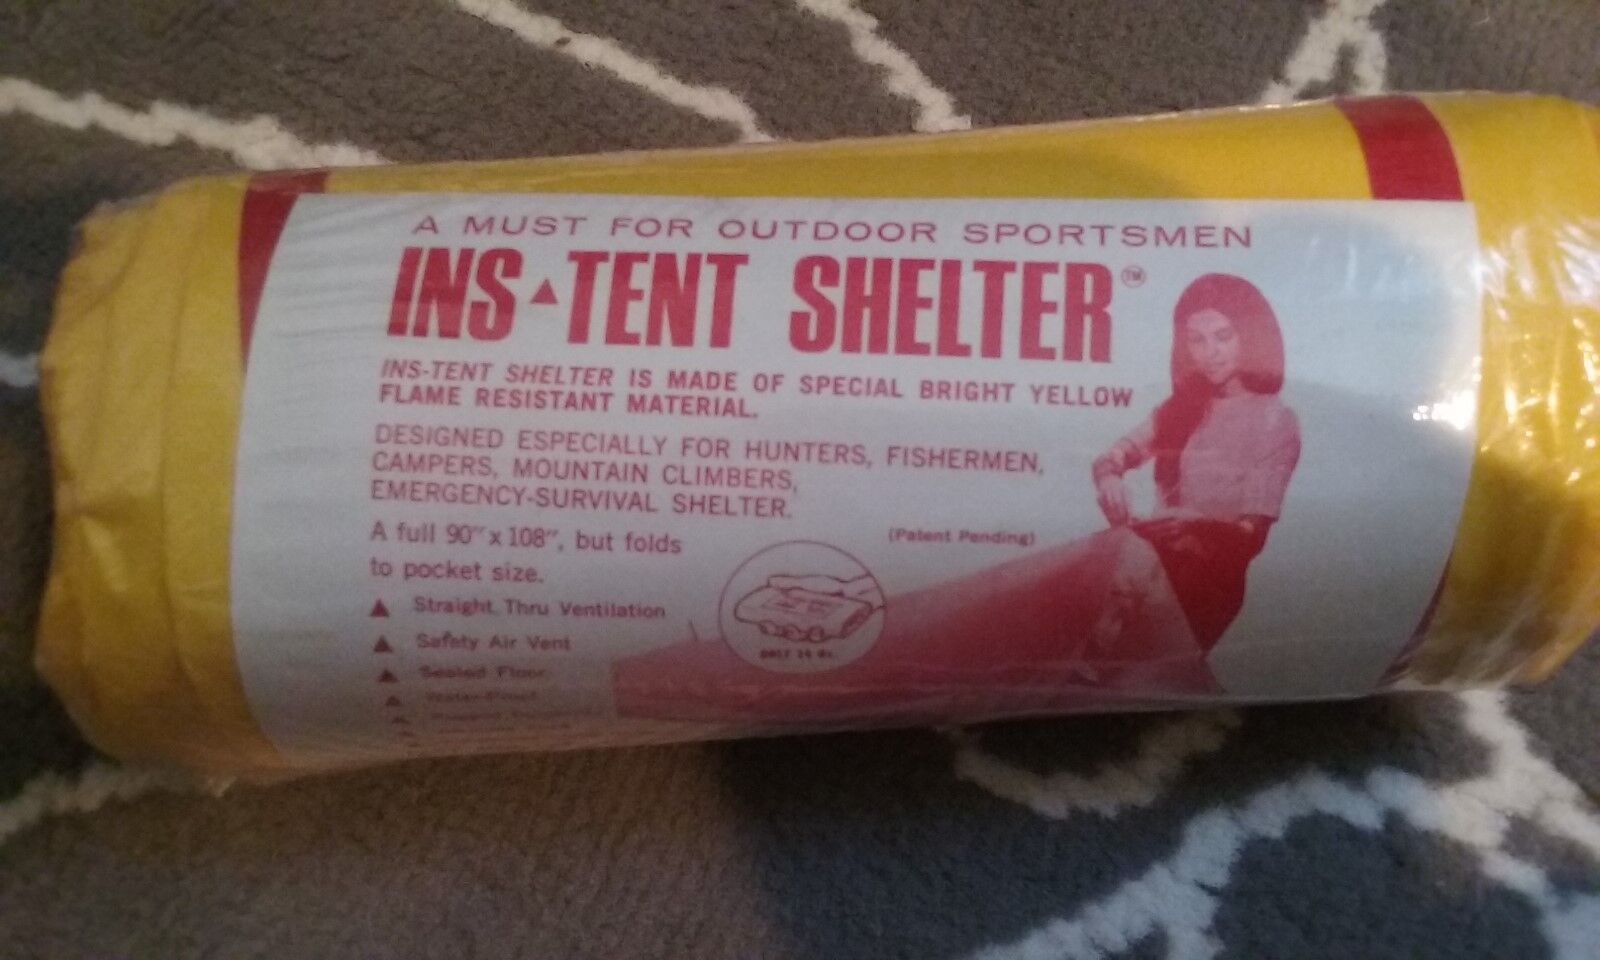 camping tent compact light INS yellow outdoors sports emerge